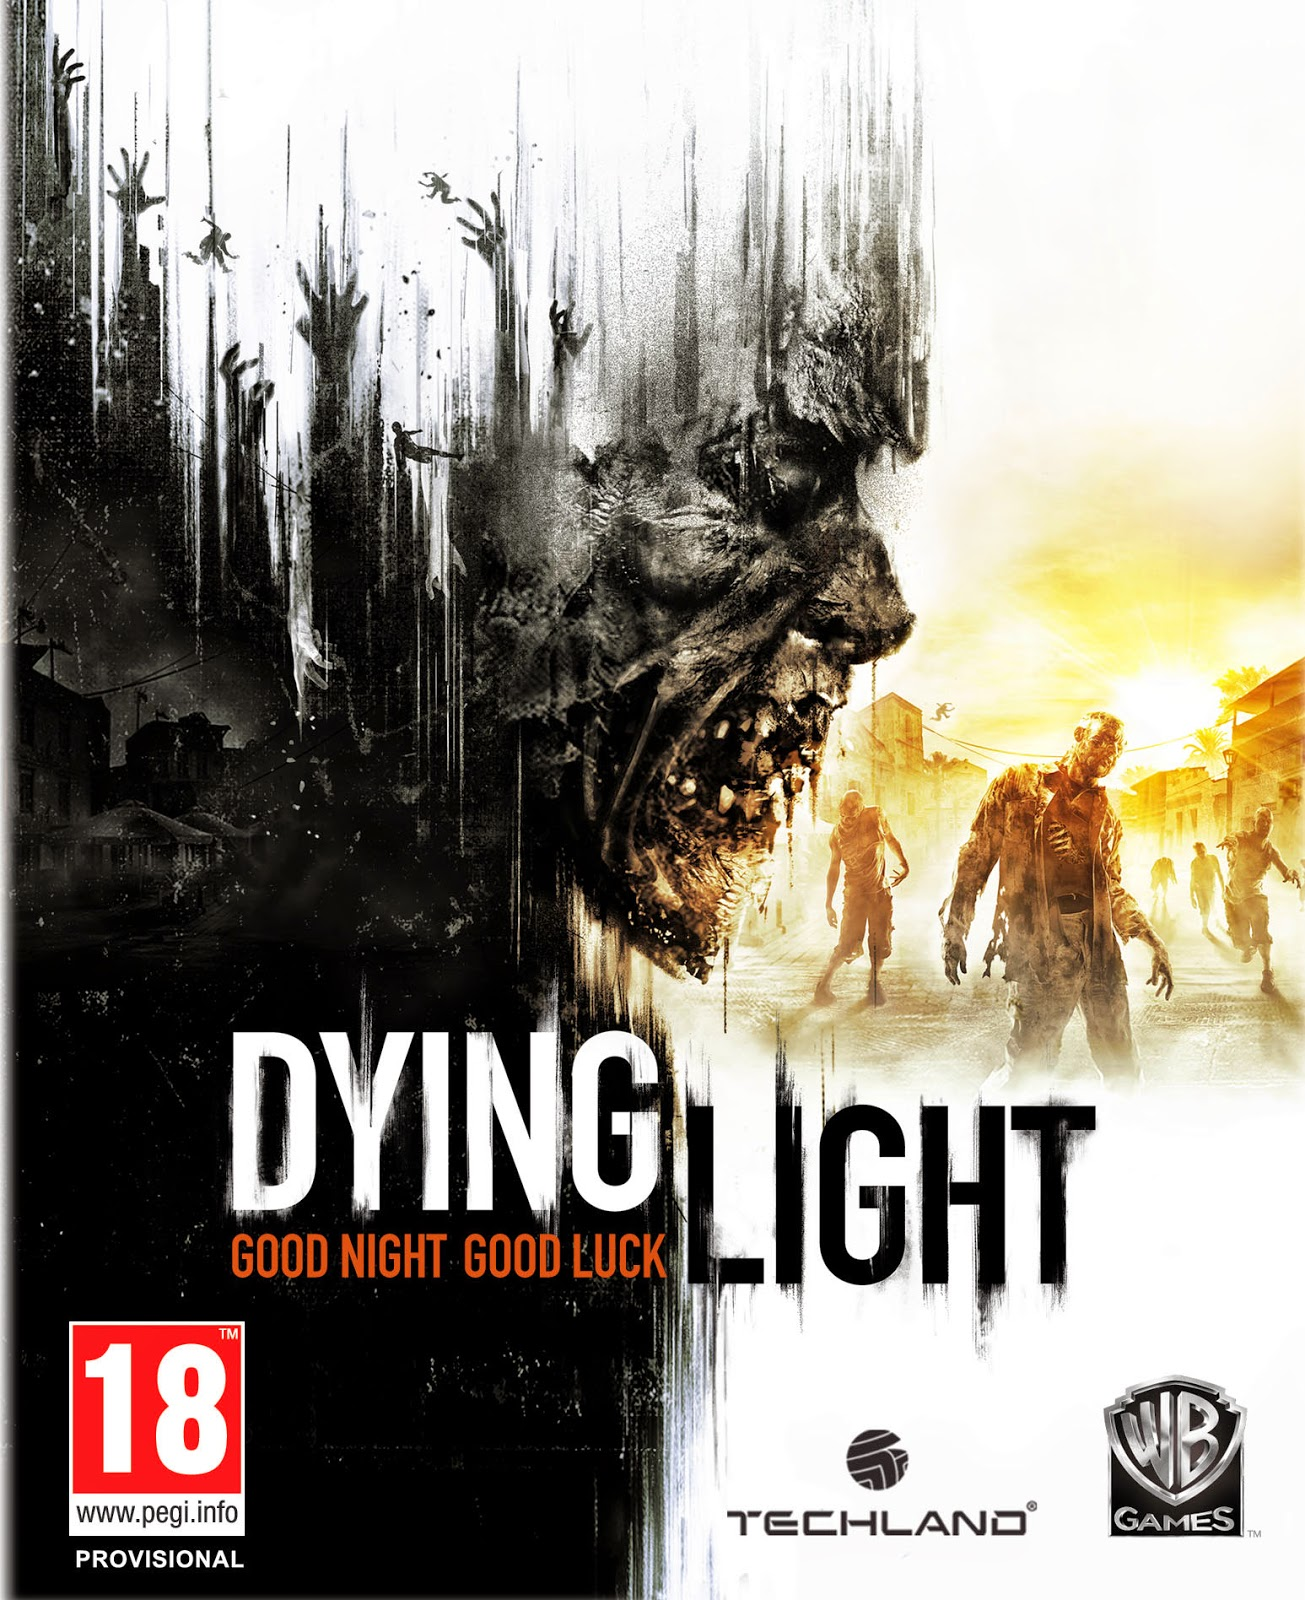 descargar Dying Light PC Full Español , mega, 4shared, 1 link